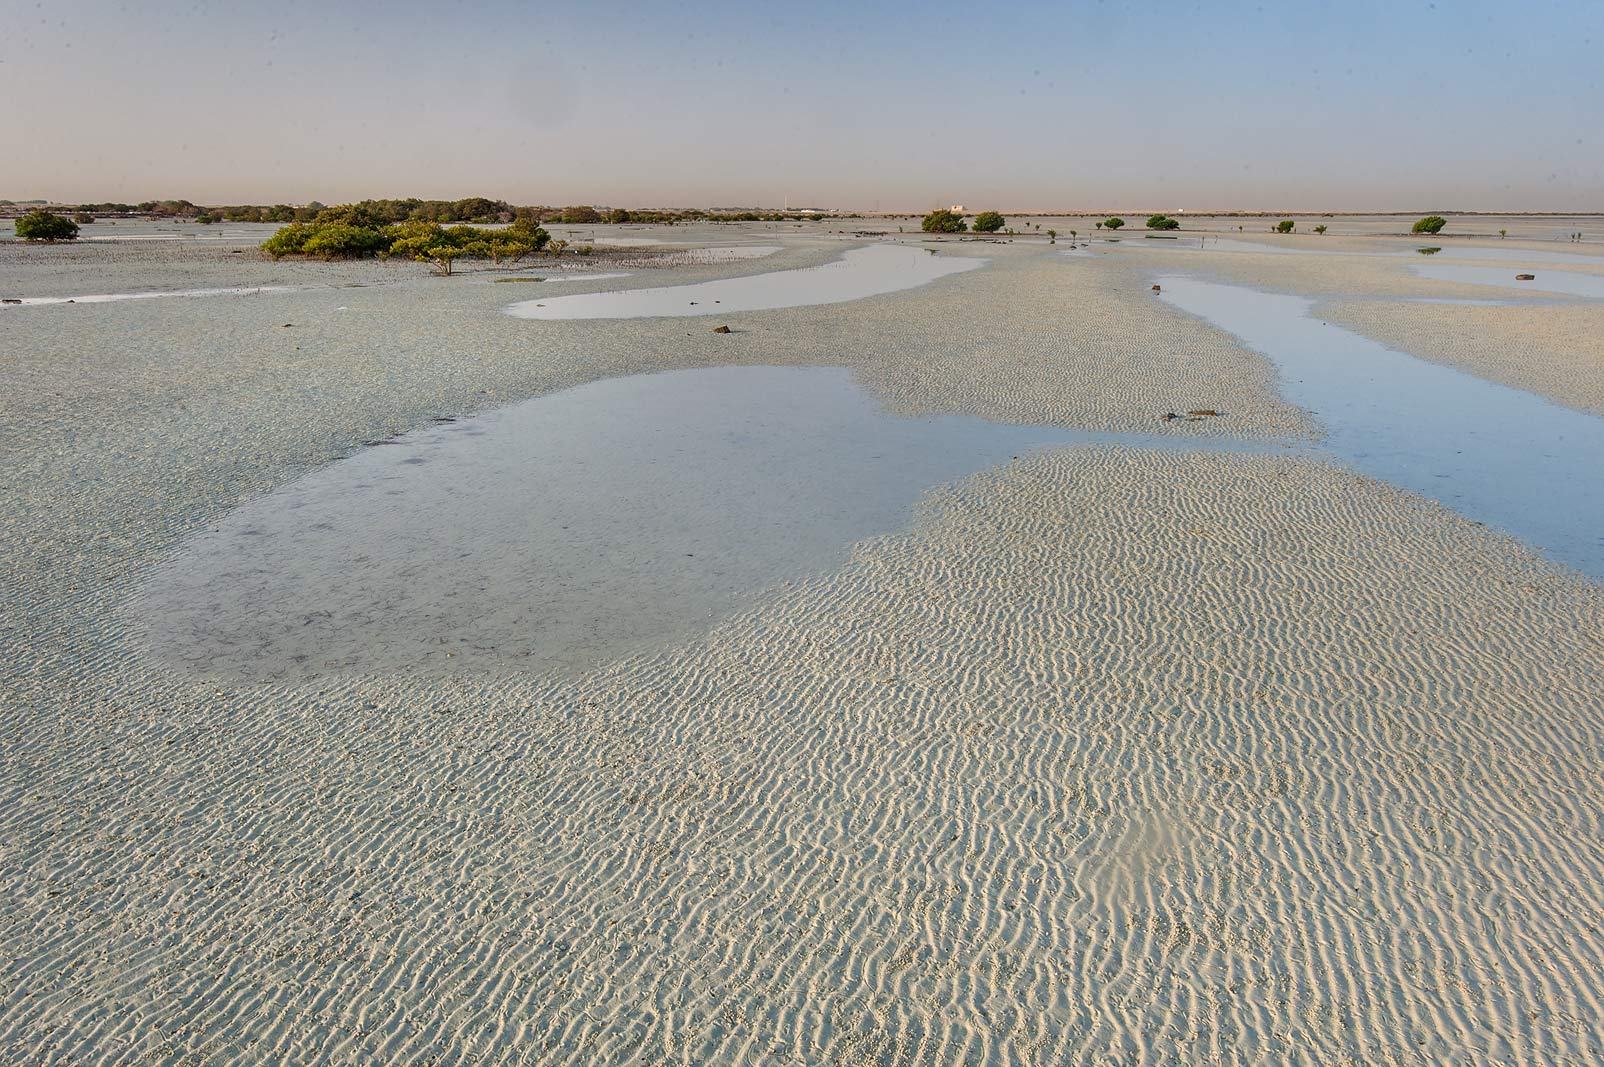 Tidal flats near a village of Al Jumail (Jumayl) west of Ruwais. Northern Qatar